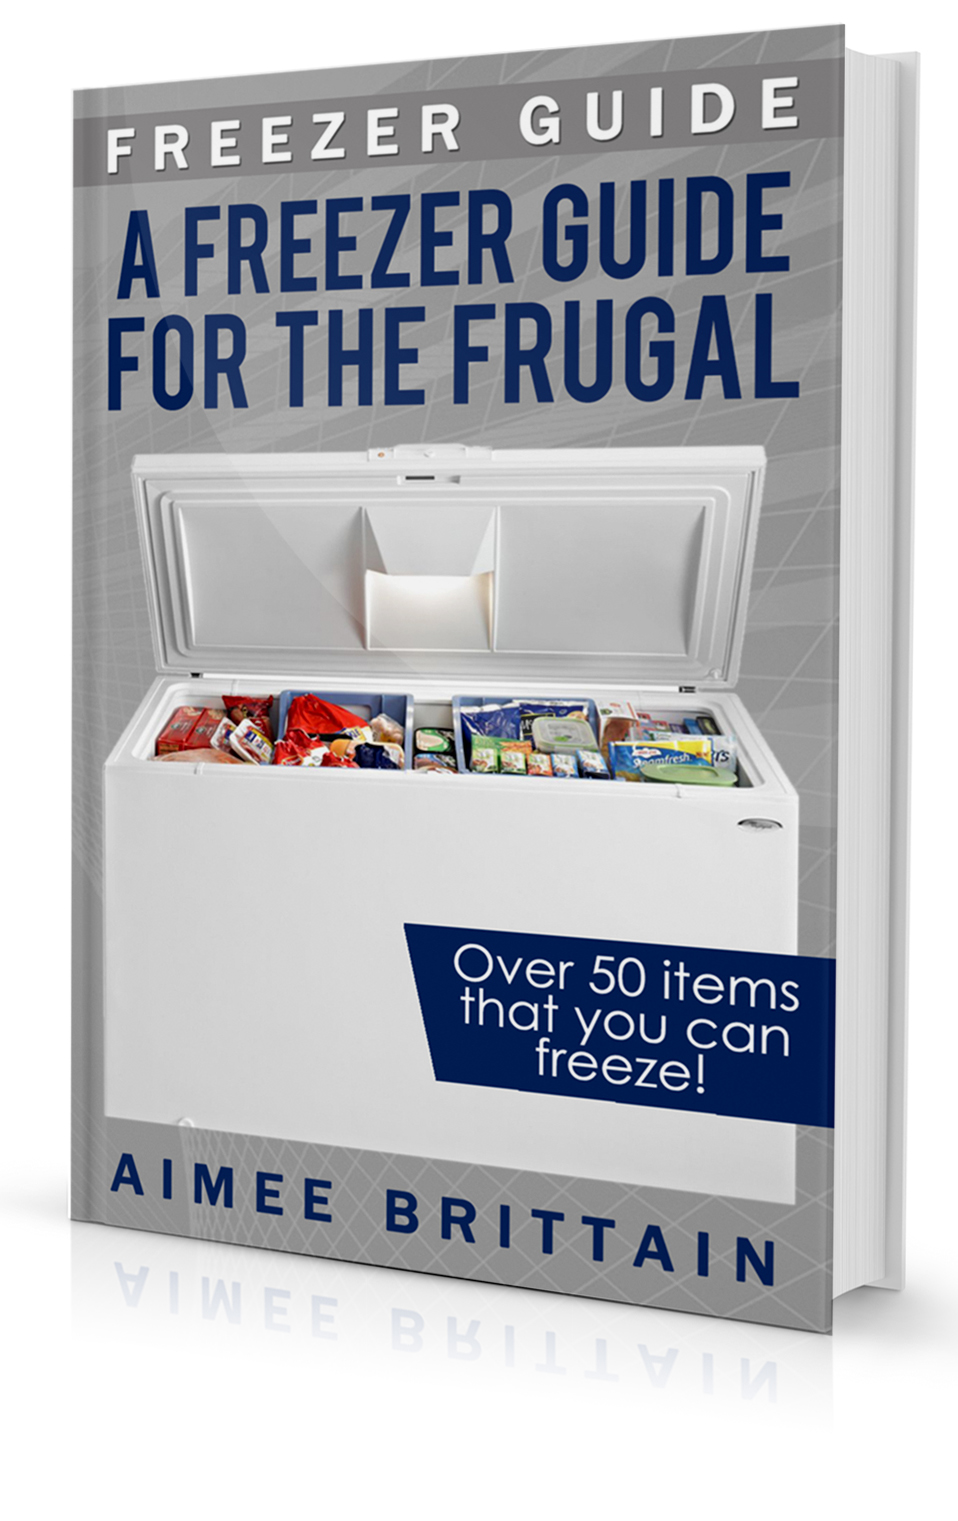 freezer guide by Aimee Brittain